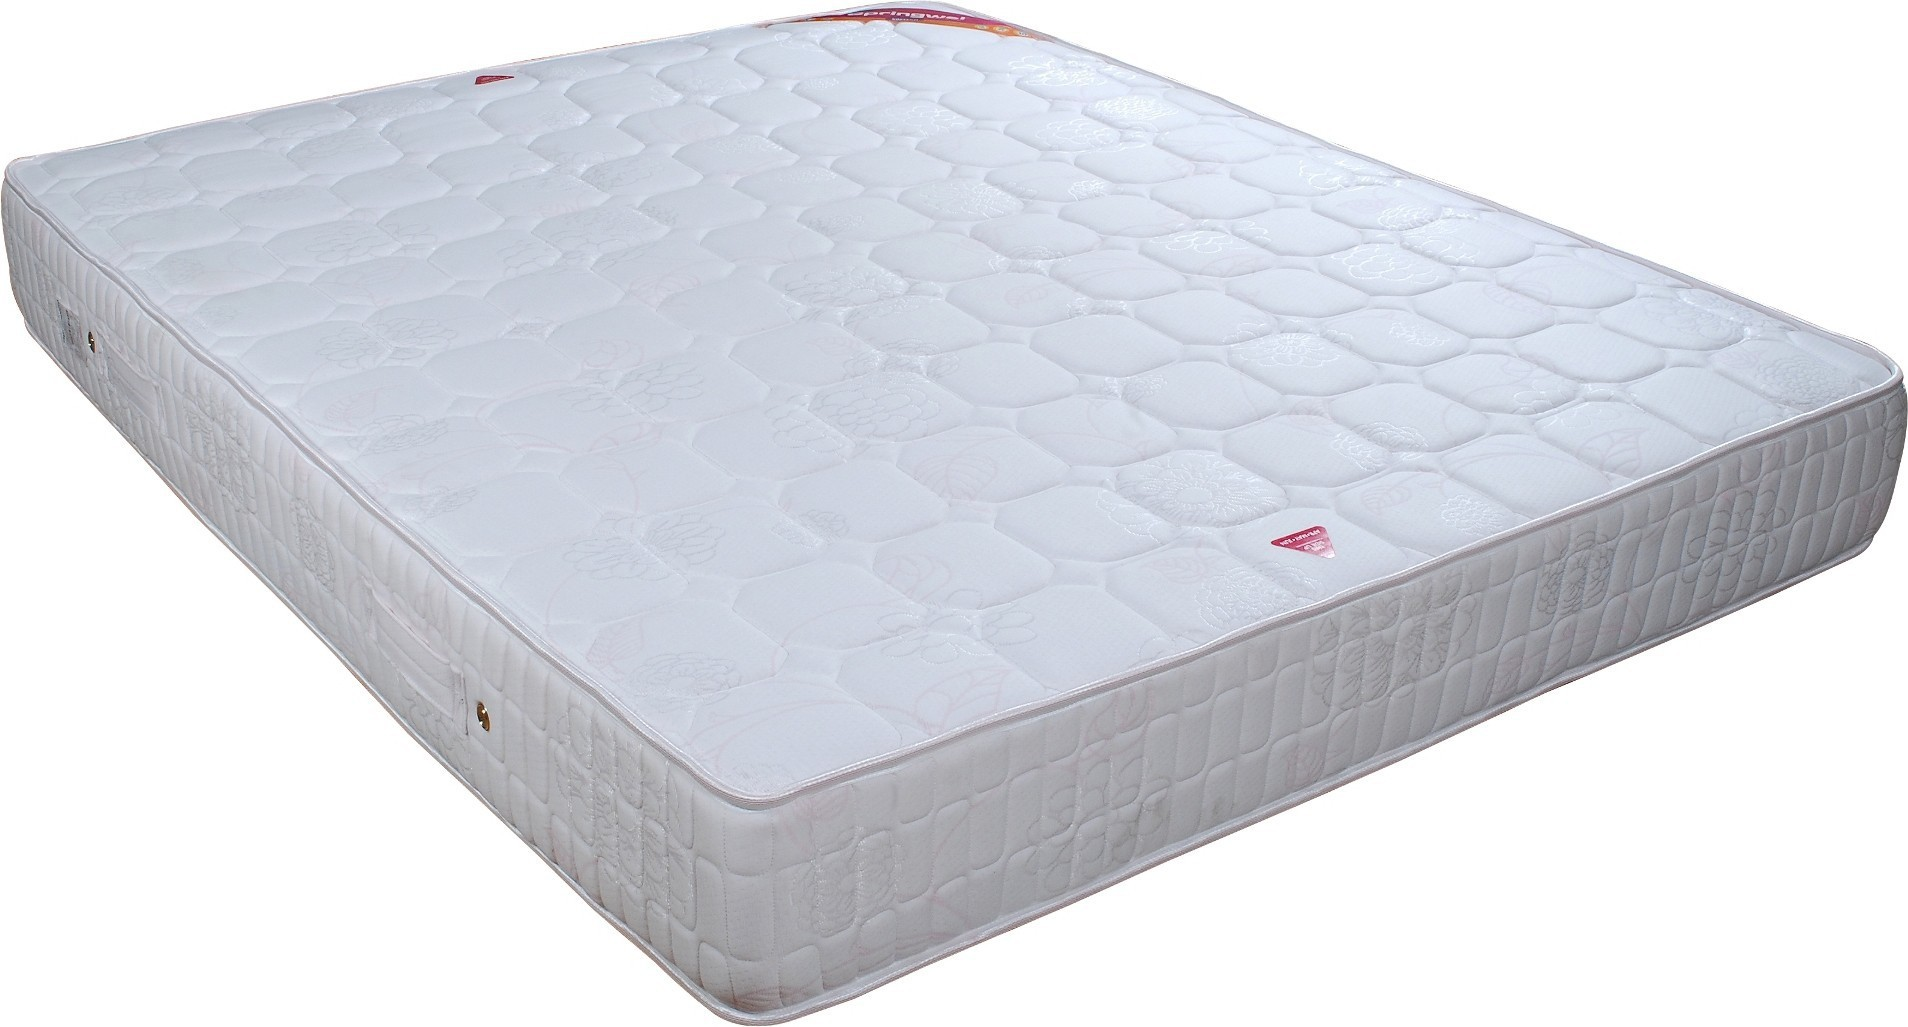 Springwel Softech Series 6 inch King Spring Mattress